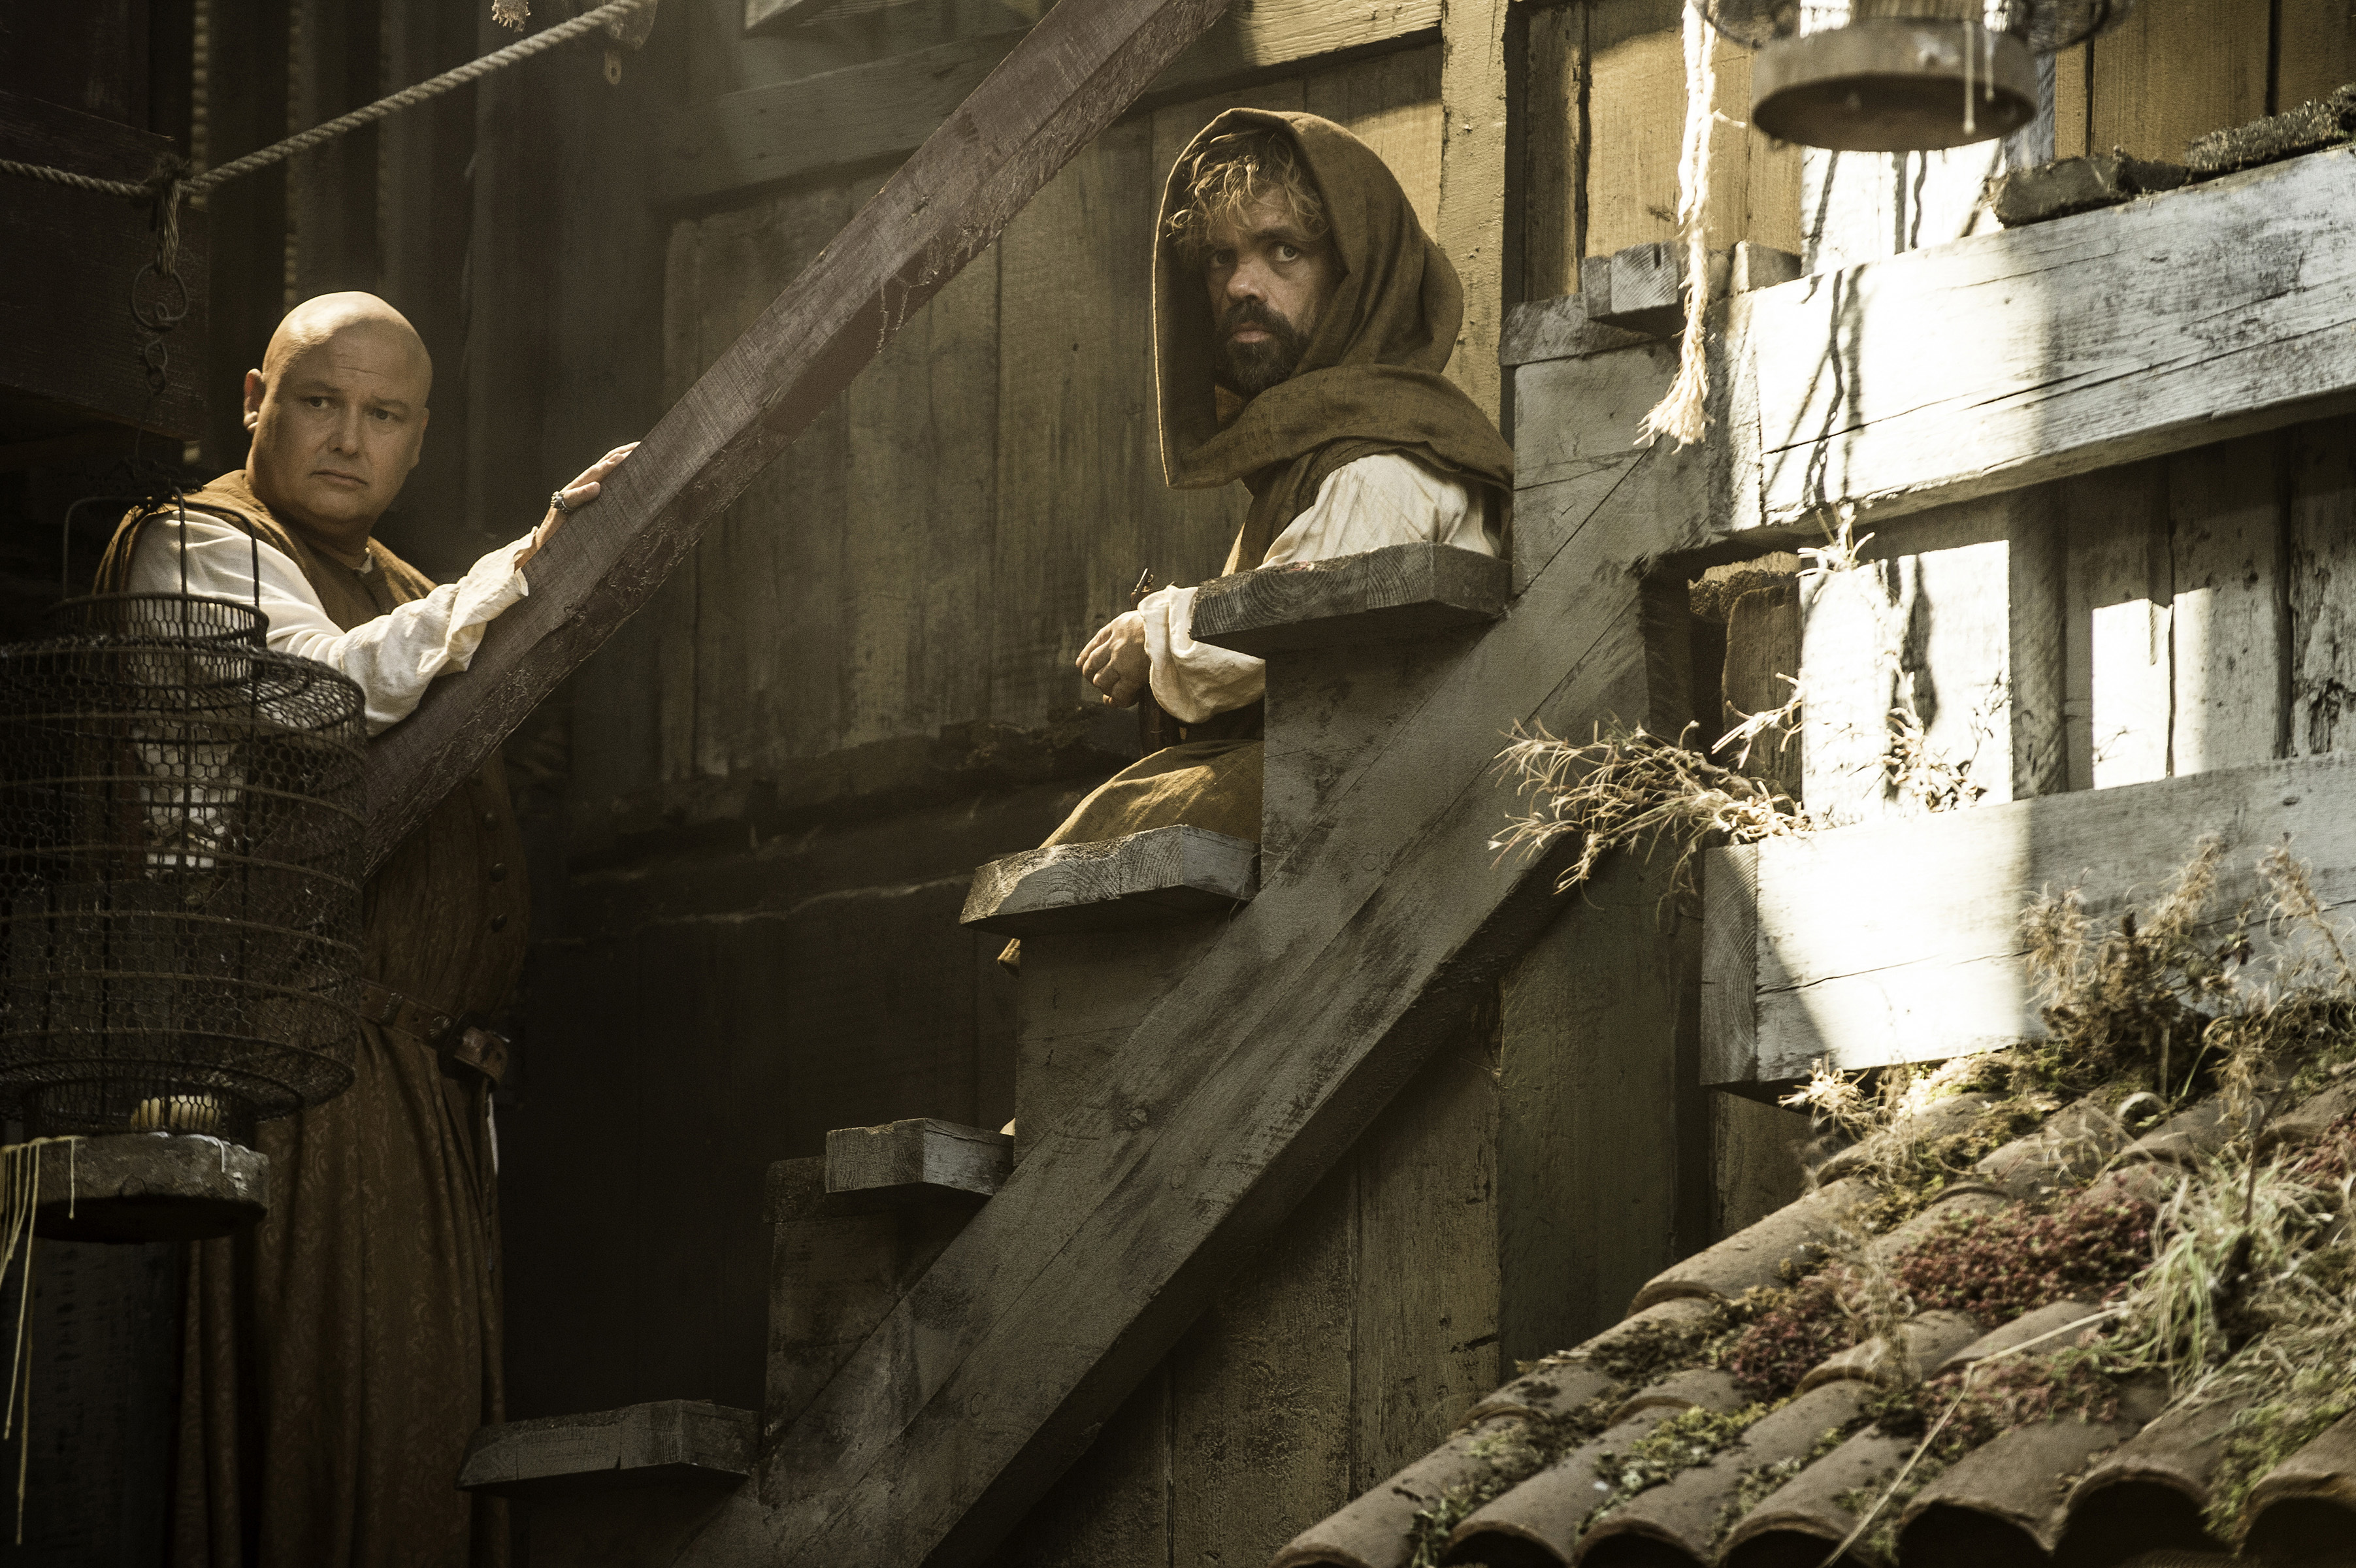 Conleth Hill and Peter Dinklage in Season 5 of Game of Thrones.